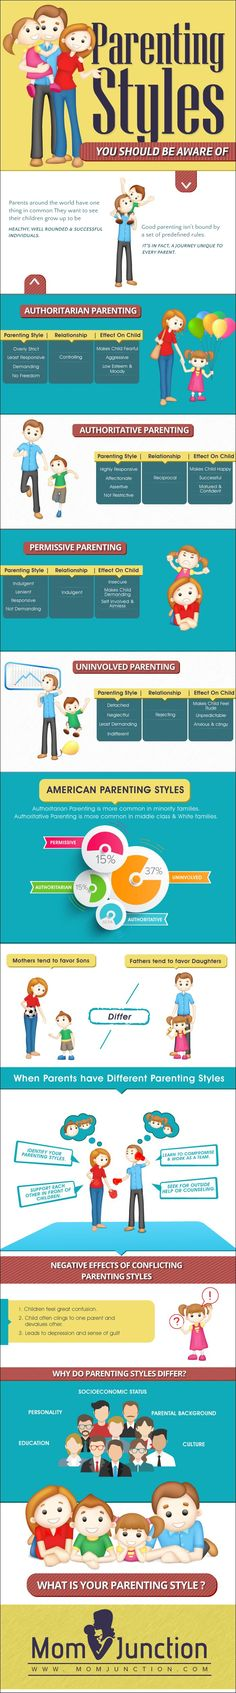 Infographic: What Is Your Parenting Style? - Aim for Authoritative - Responsive…